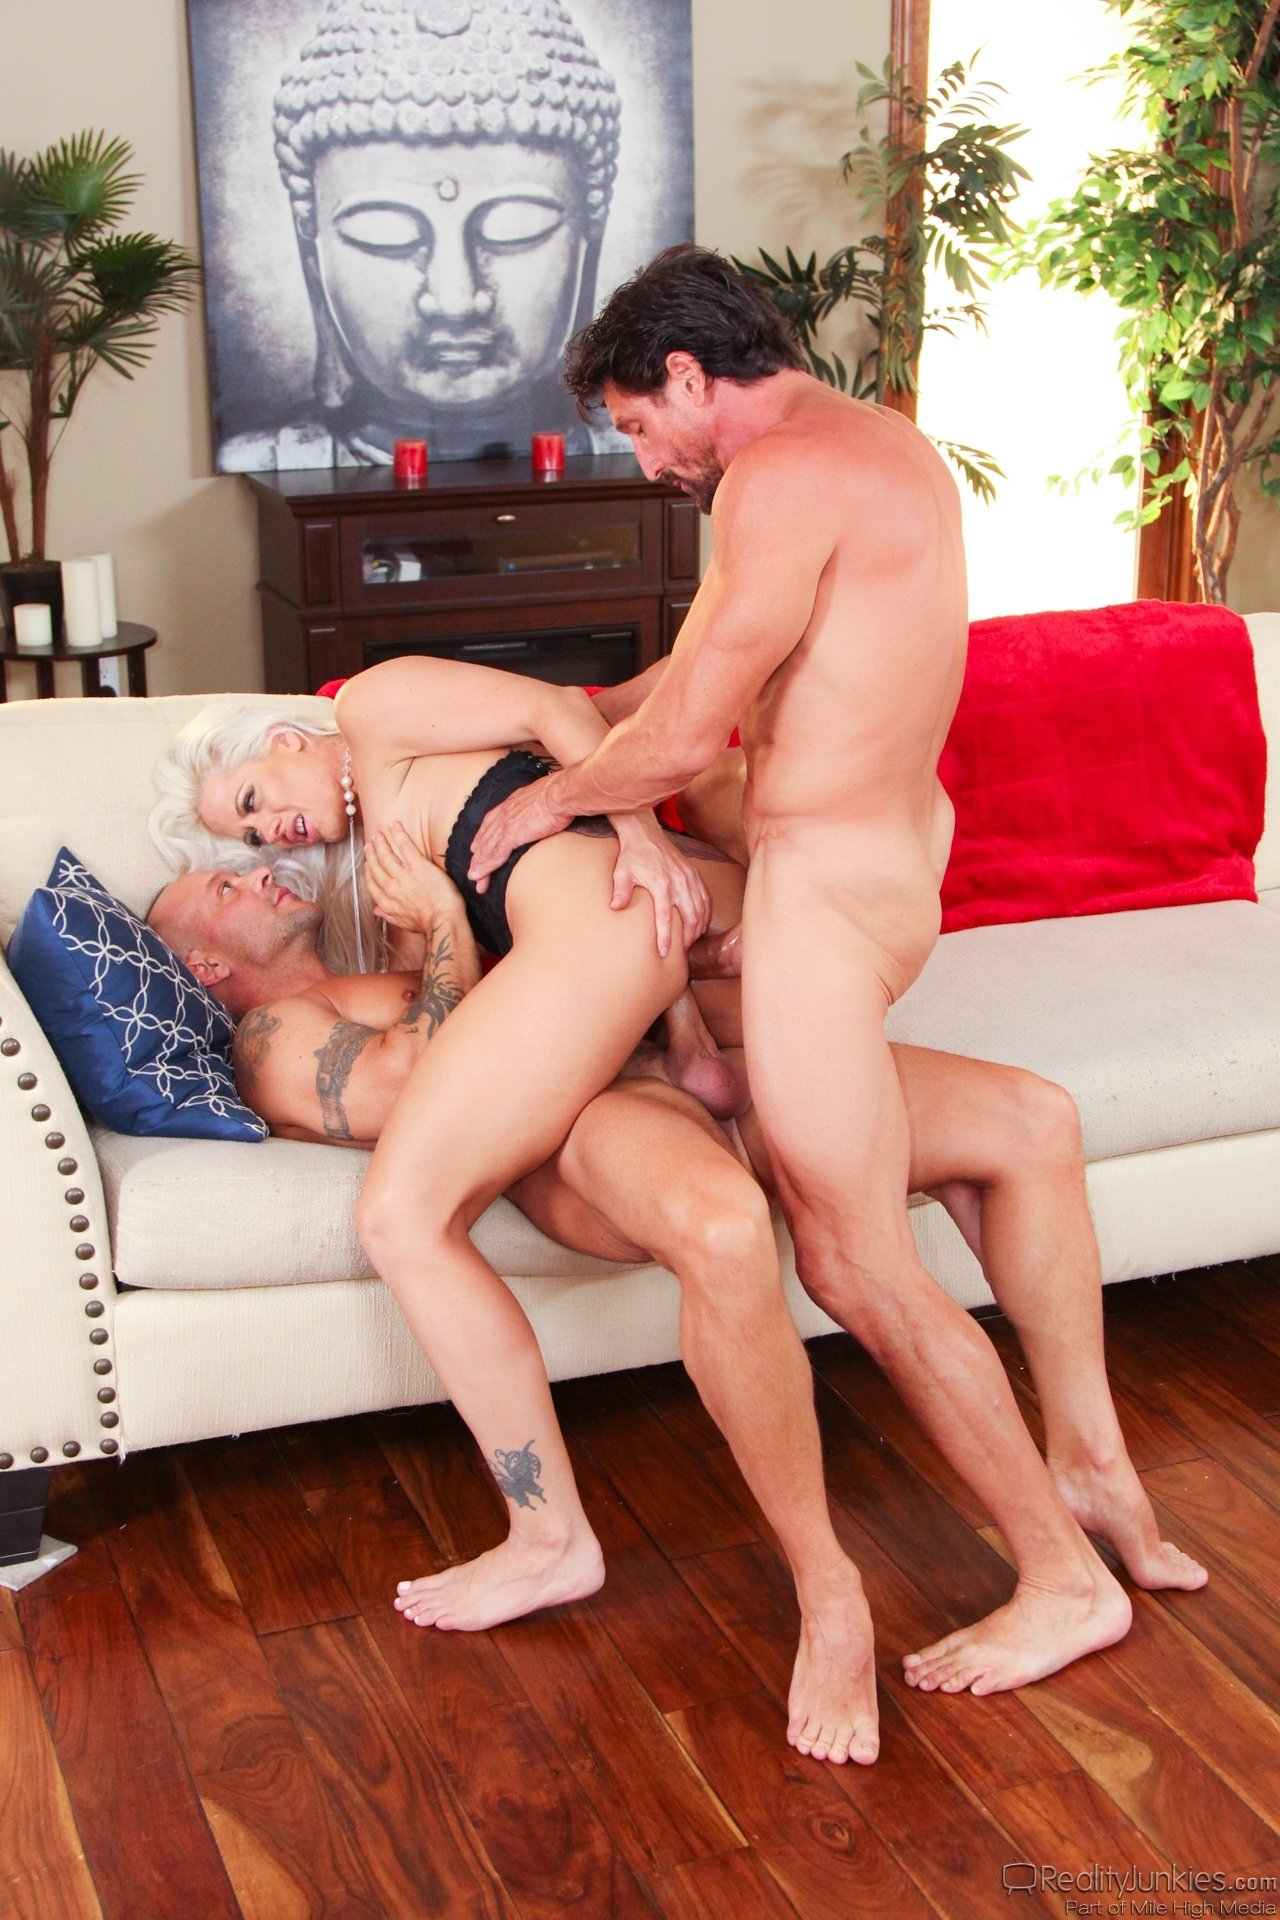 Facial stories xxx Husband share blindfolded wife